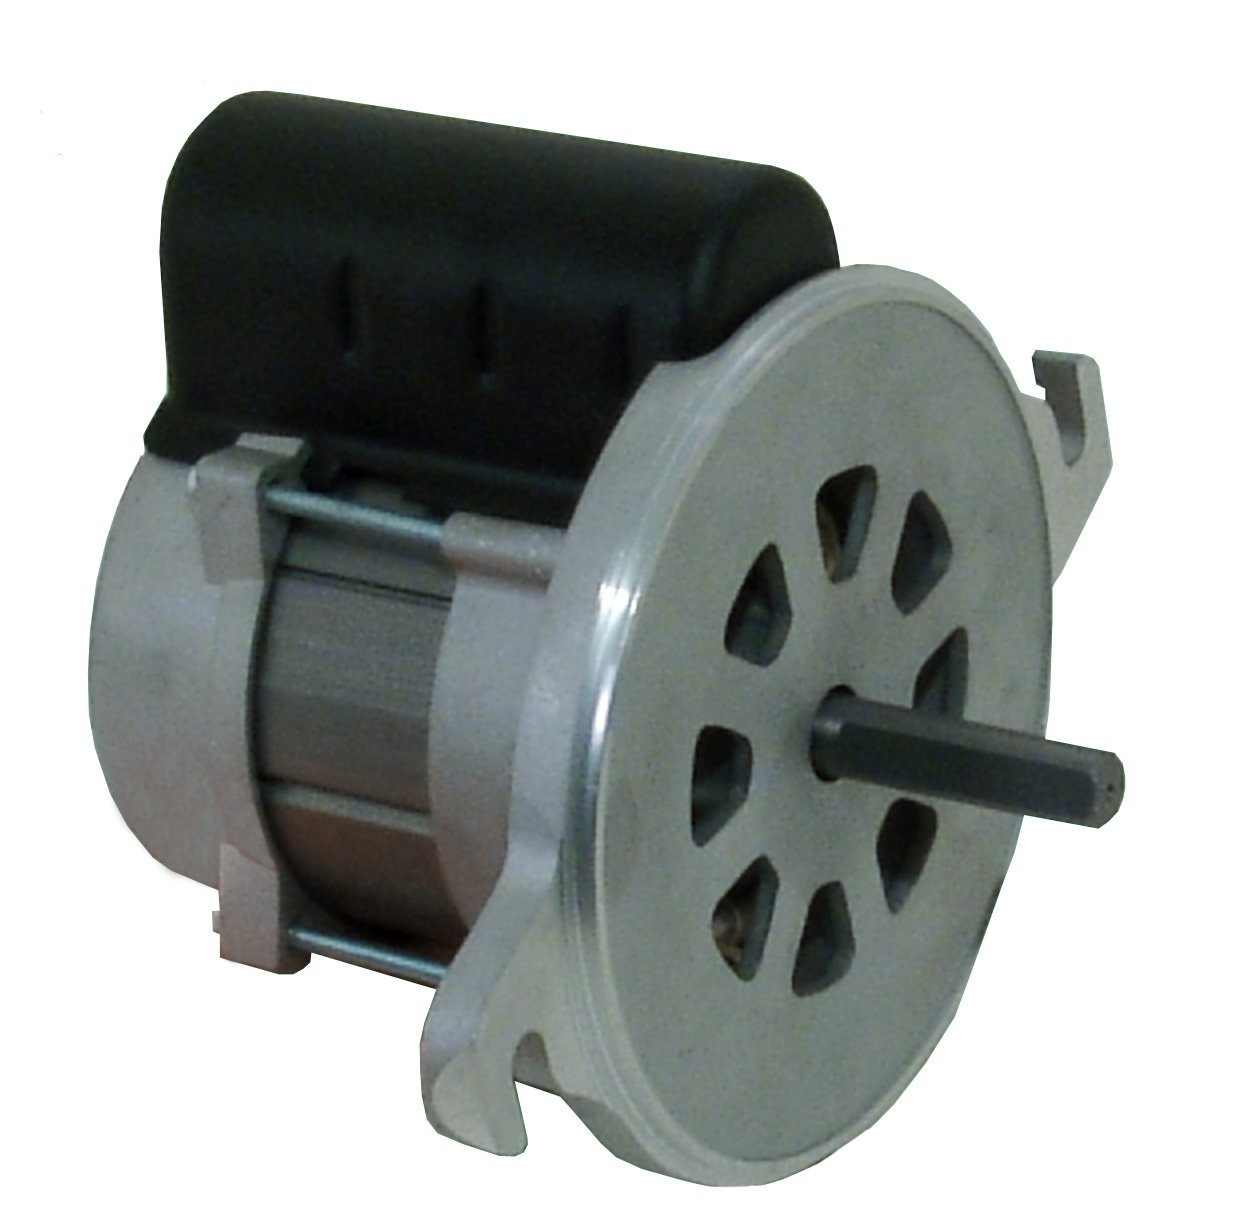 A.O. Smith OBK6002V1 1/7 HP, 3450 RPM, 115 Volts, 48M Frame, Totally Enclosed, Ball Bearing, CWOSE Rotation Oil Burner Motor